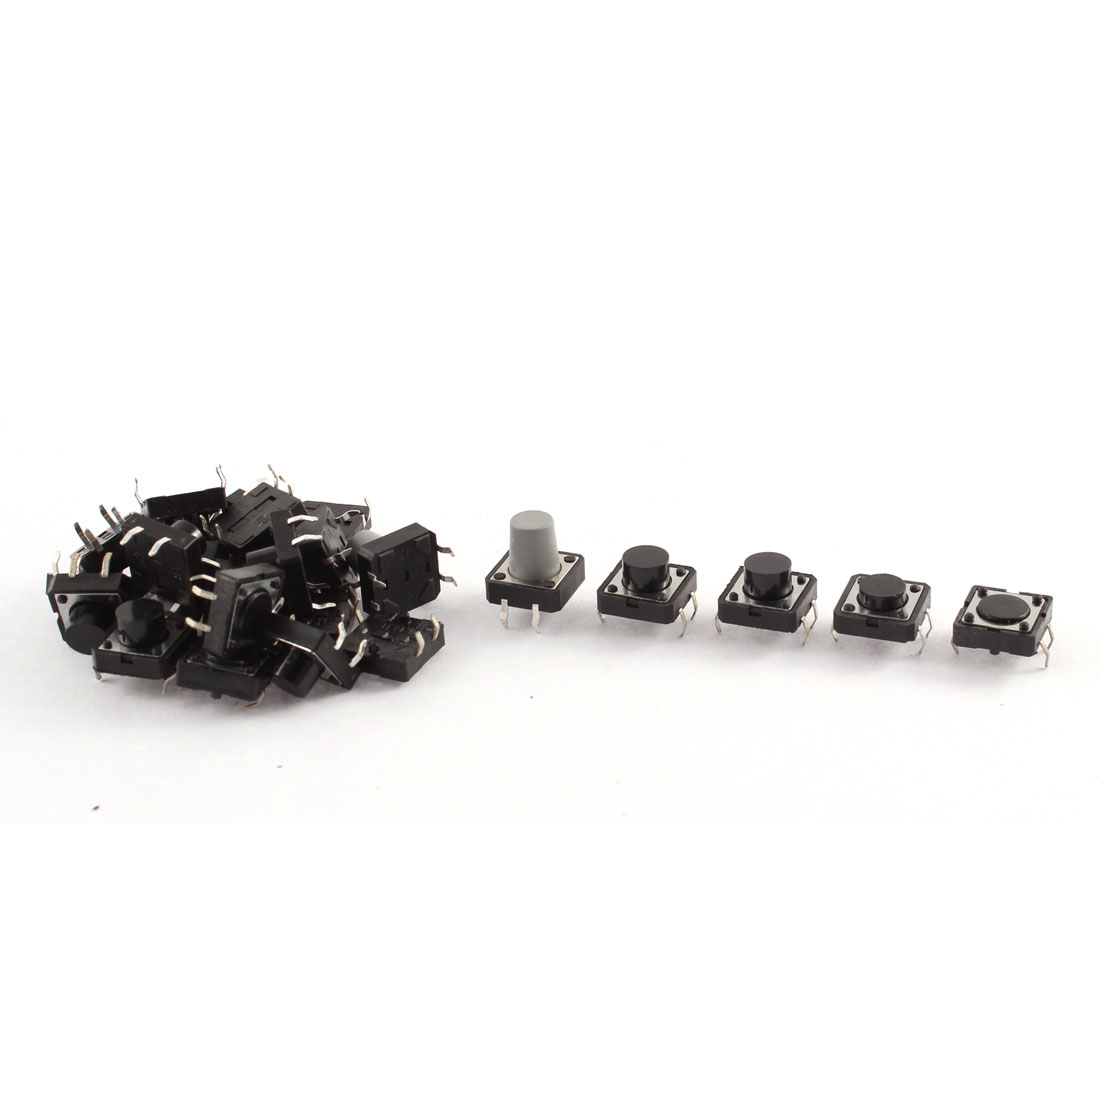 3 Sizes 4 Terminals Push Button Momentary Tact Tactile Switch 25 Pcs Black